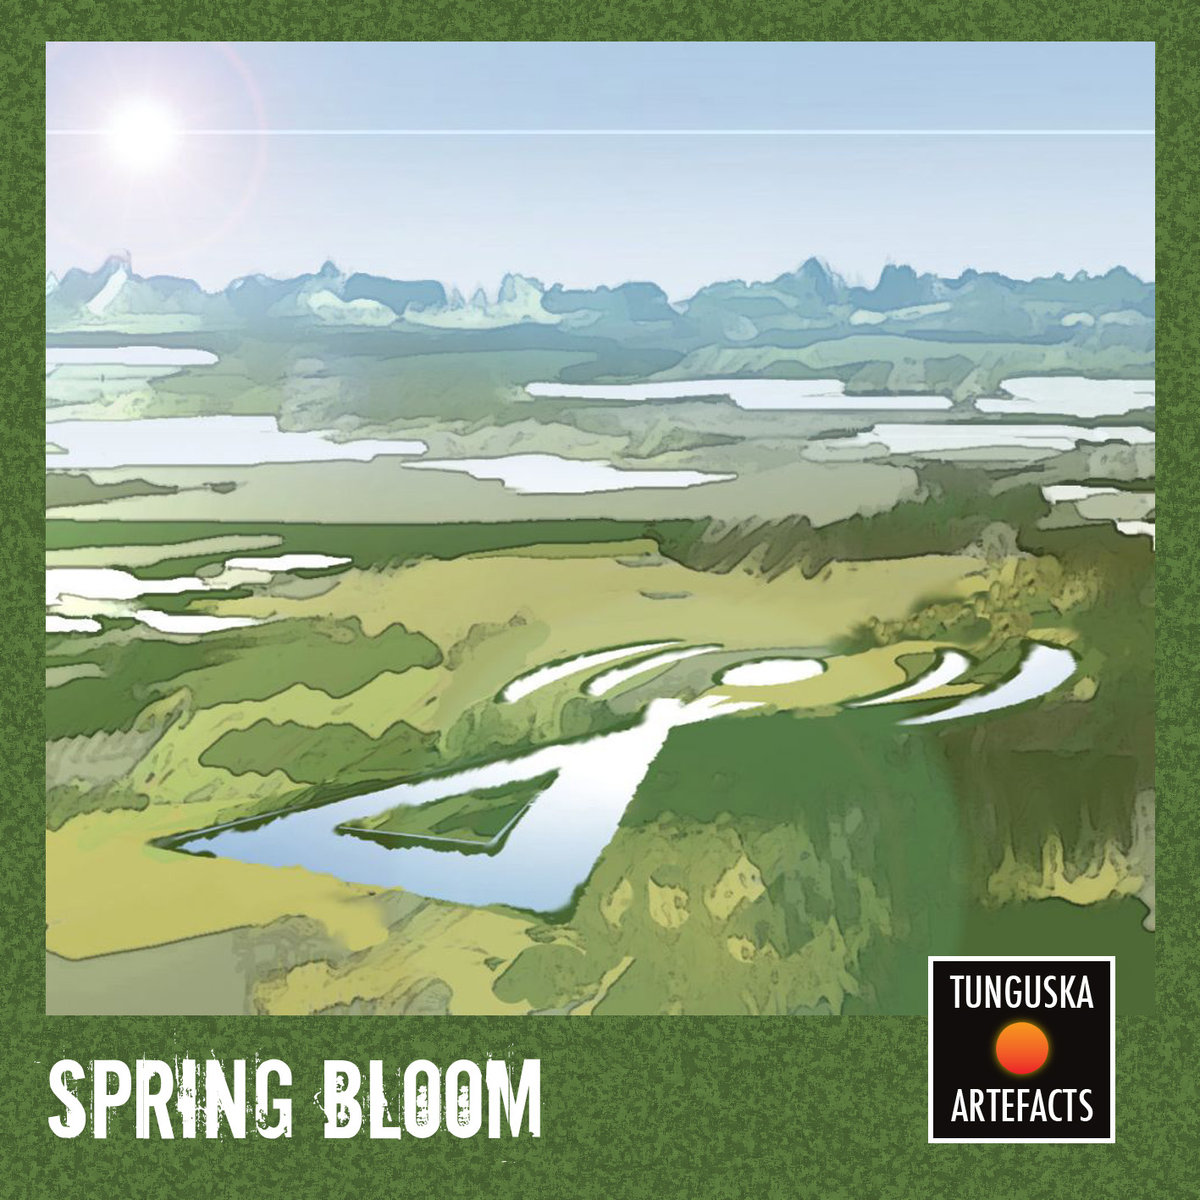 Steffl - Blossomness of Afterglow @ 'Tunguska Artefacts - Spring Bloom' album (electronic, ambient)